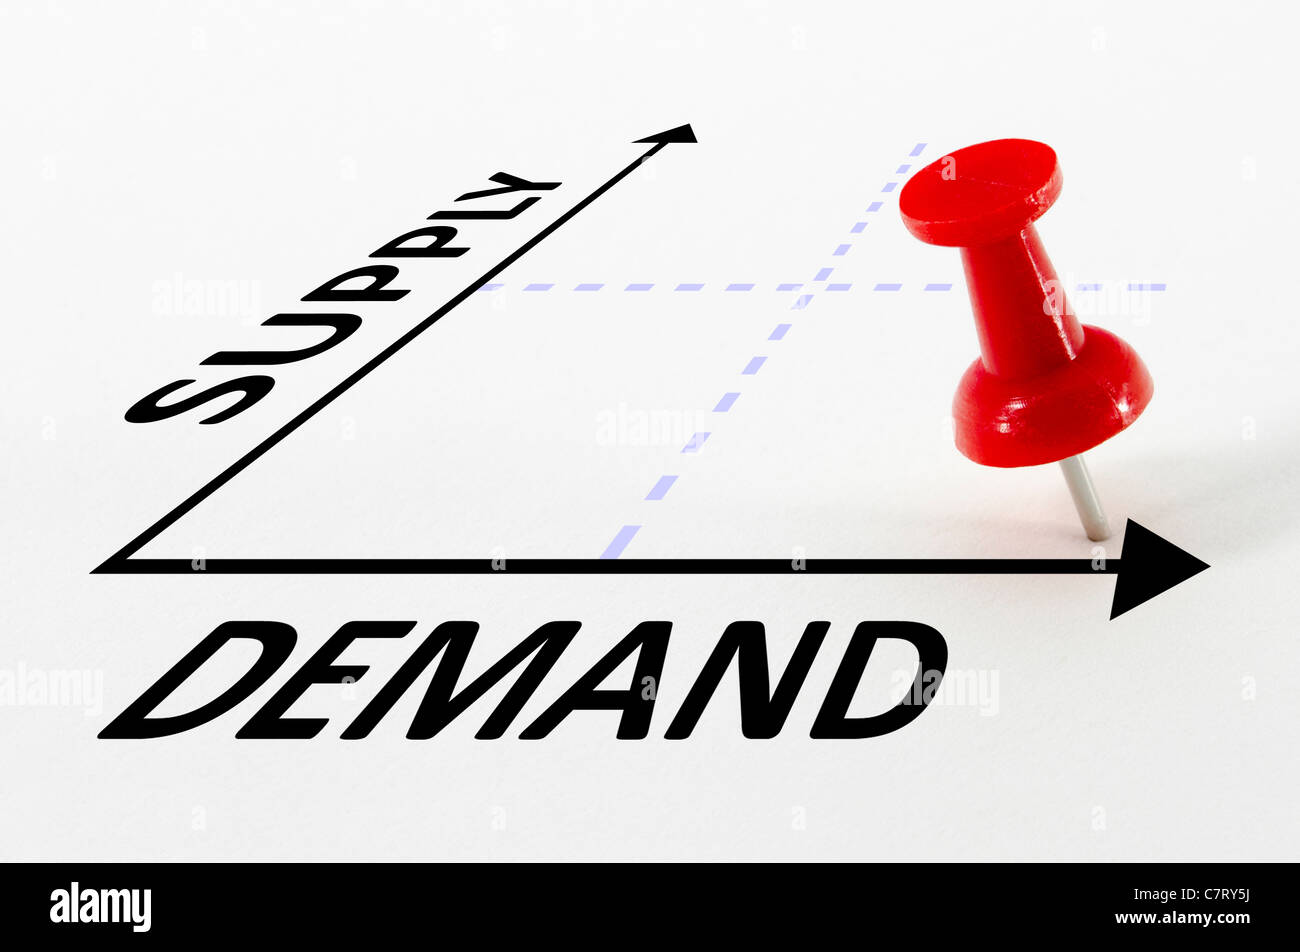 High Demand and Low Supply analysis concept on a graph with a red push pin - Stock Image